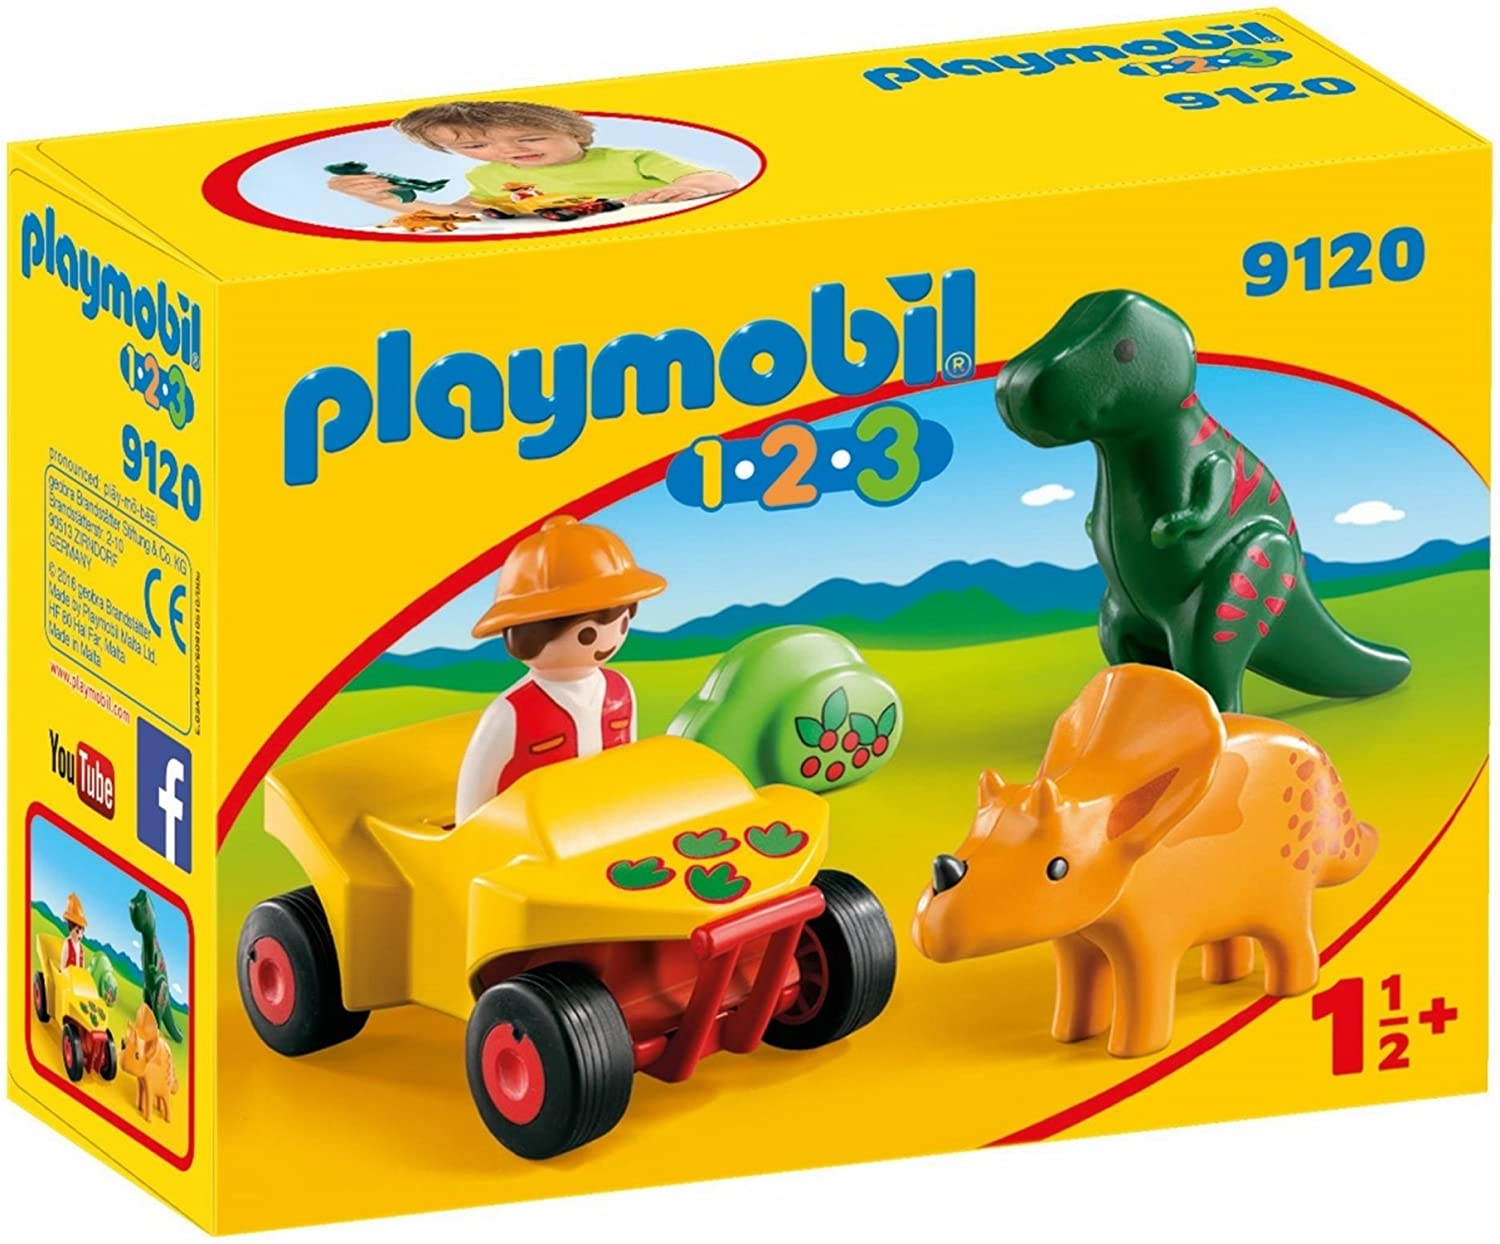 PLAYMOBIL Explorer with Dinos Building Set